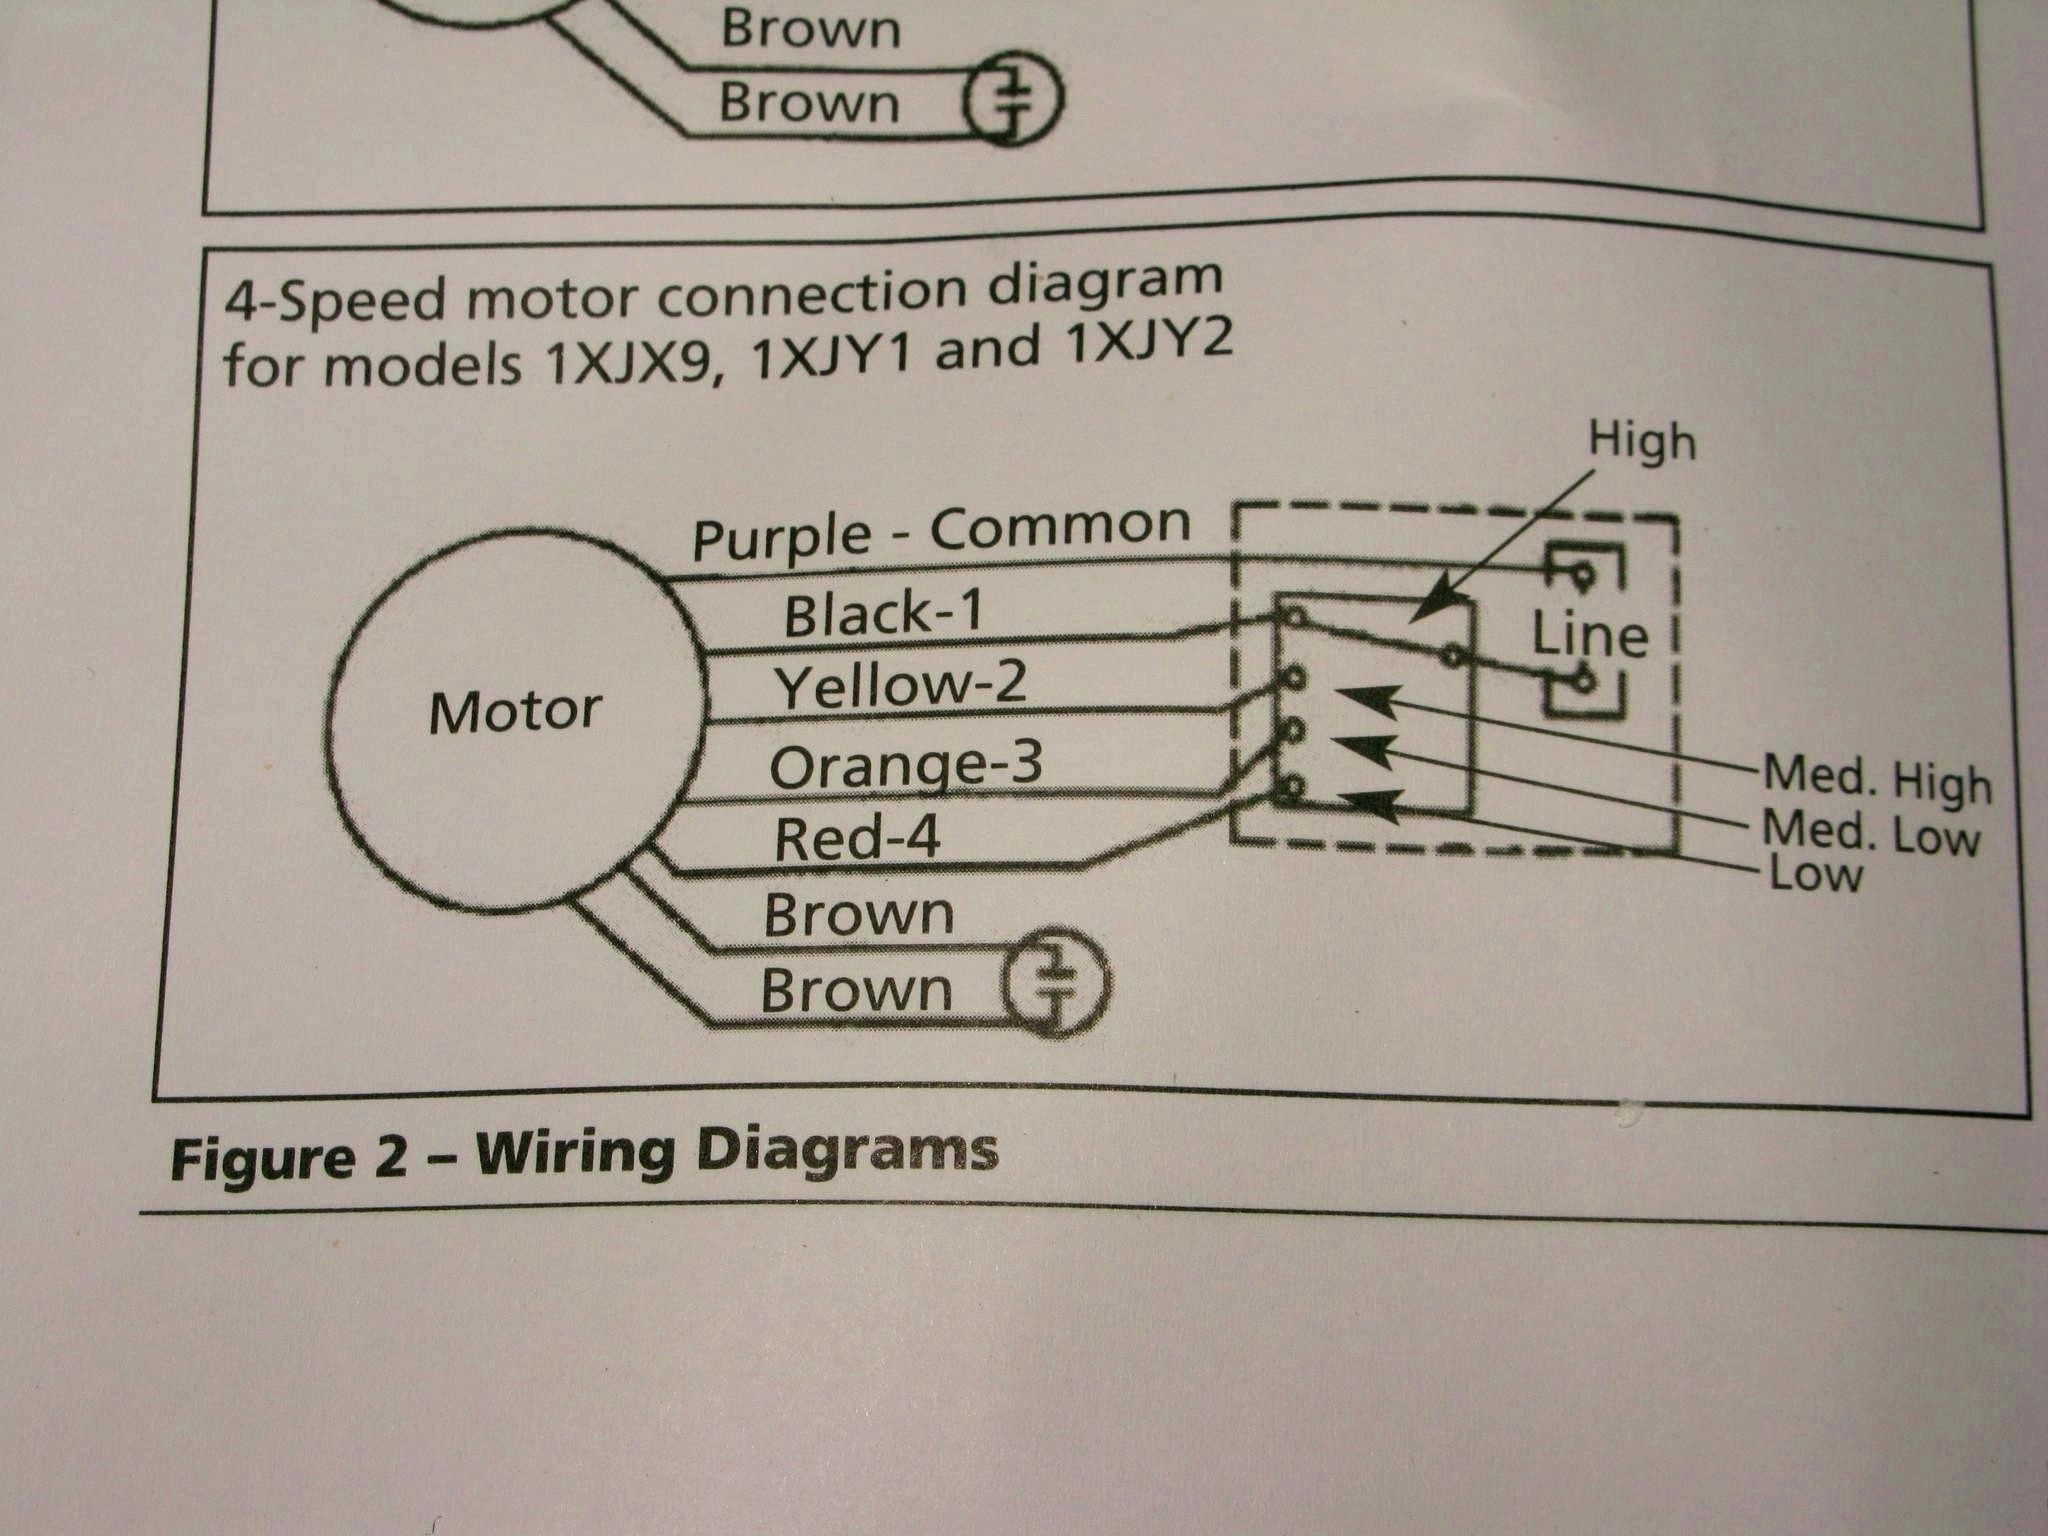 230 Volt Fan Motor Wiring Diagram | Wiring Library - Century Ac Motor Wiring Diagram 115 230 Volts